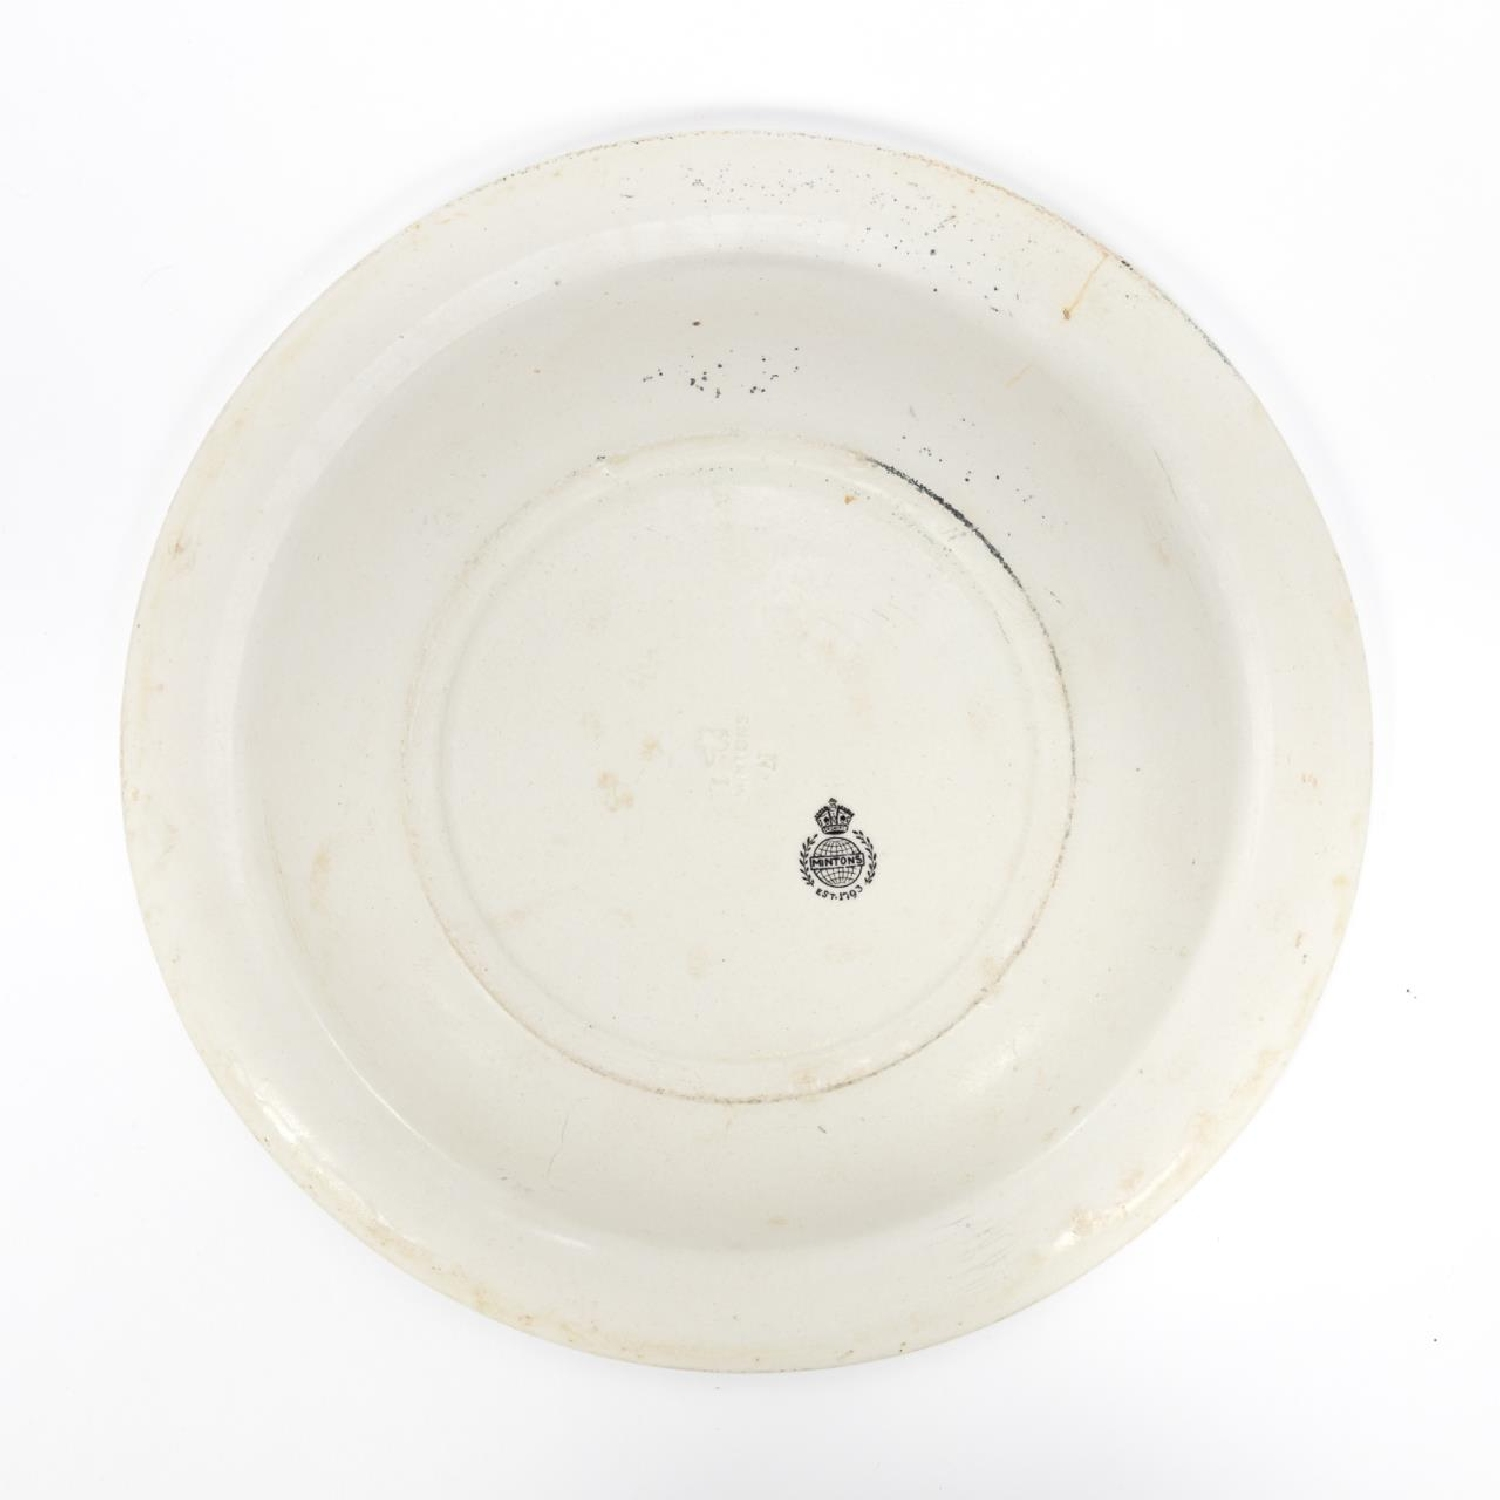 RMS CARPATHIA, SALVAGED THIRD CLASS BOWL WITH LOGO - Image 3 of 5